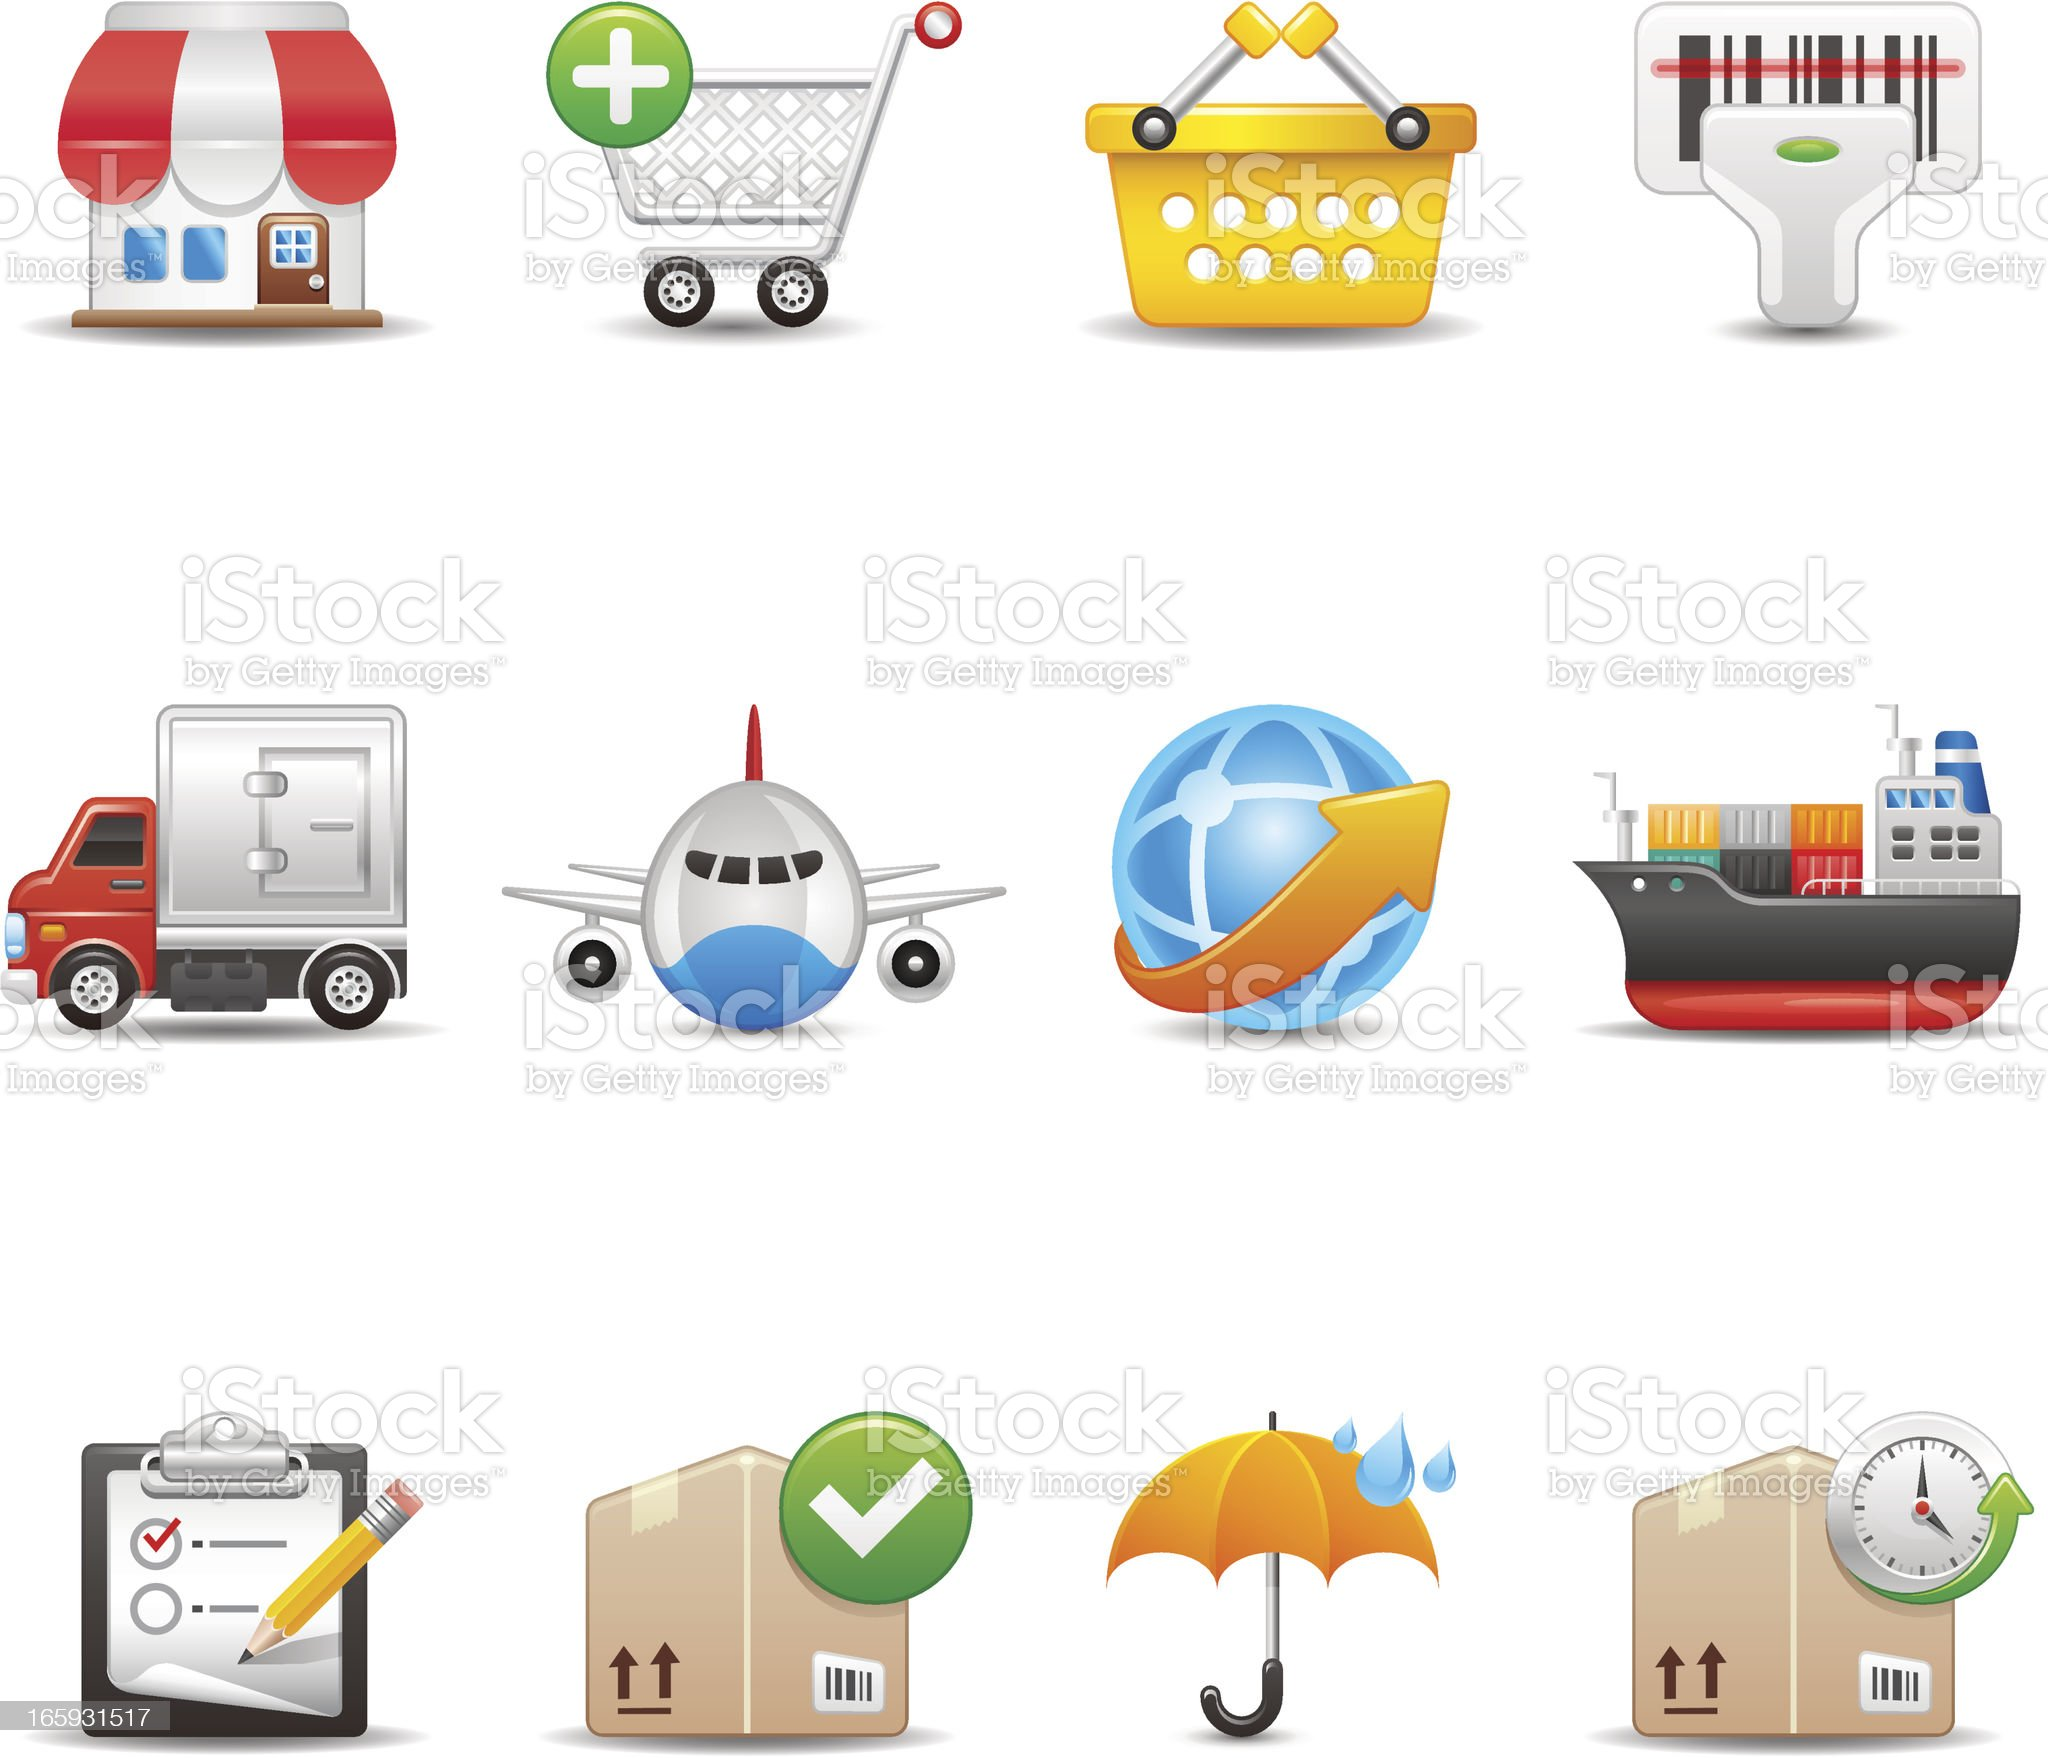 Shopping and Shipping Icon Set   Elegant Series royalty-free stock vector art